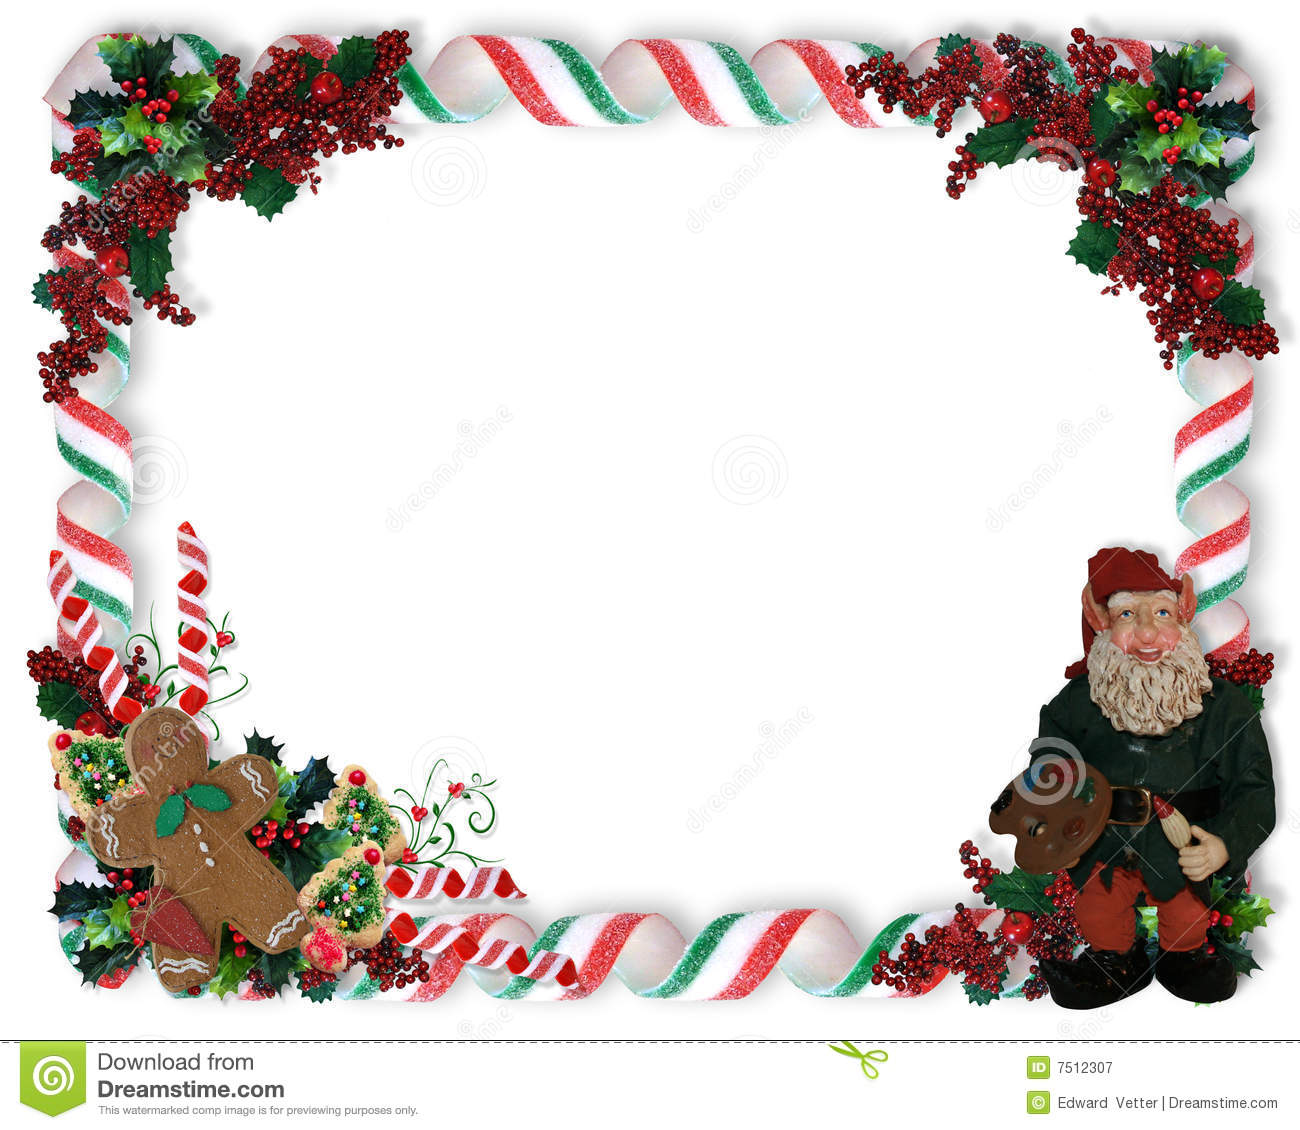 1300 x 1130 jpeg 199kB, Elf Border For Letter | Search Results ...